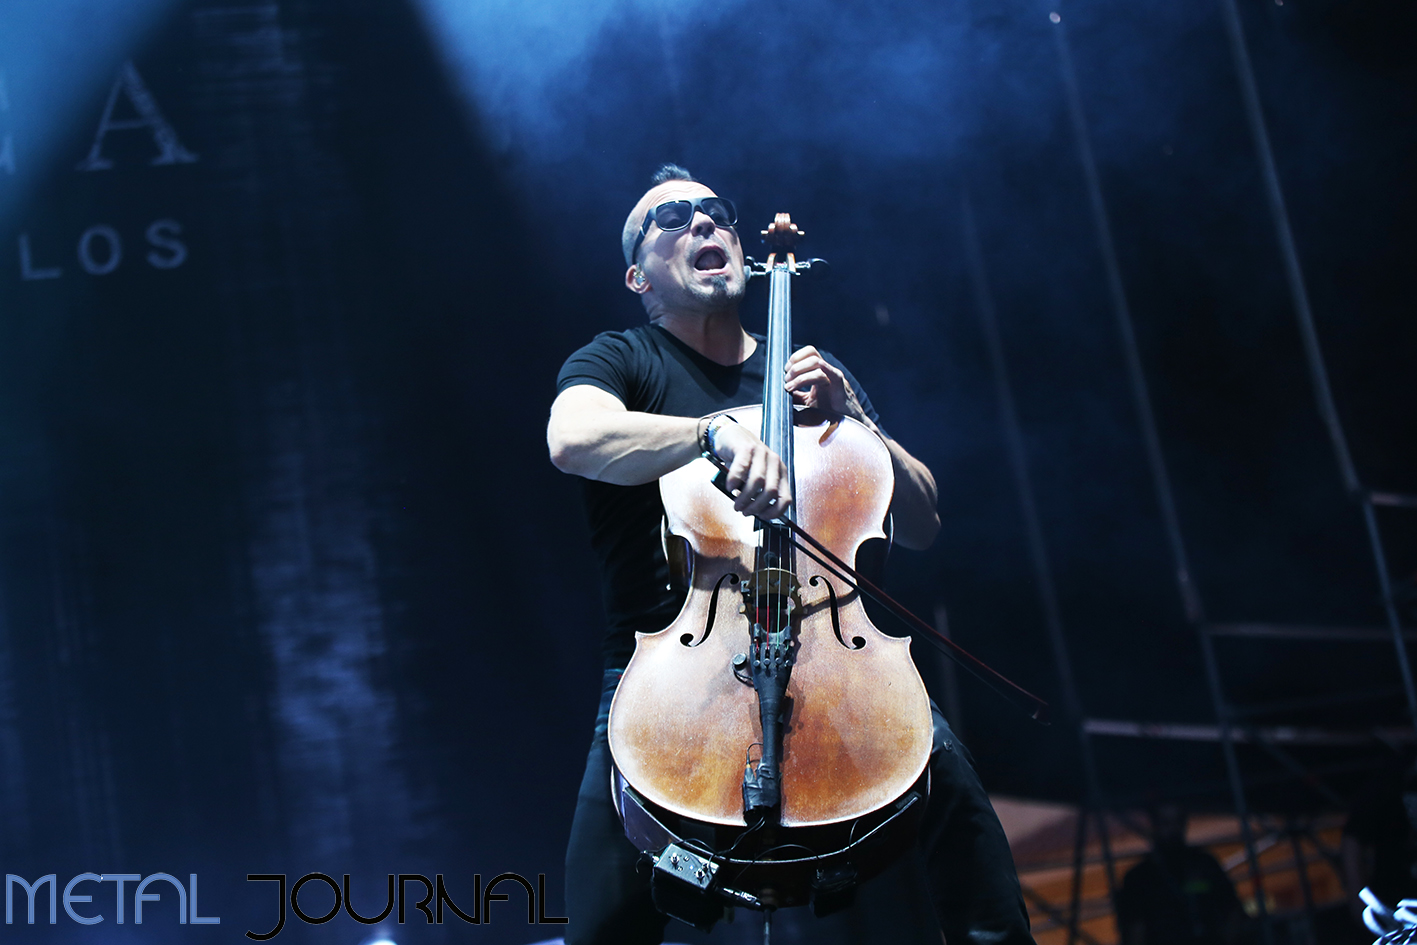 apocalyptica - leyendas del rock 2019 metal journal pic 4